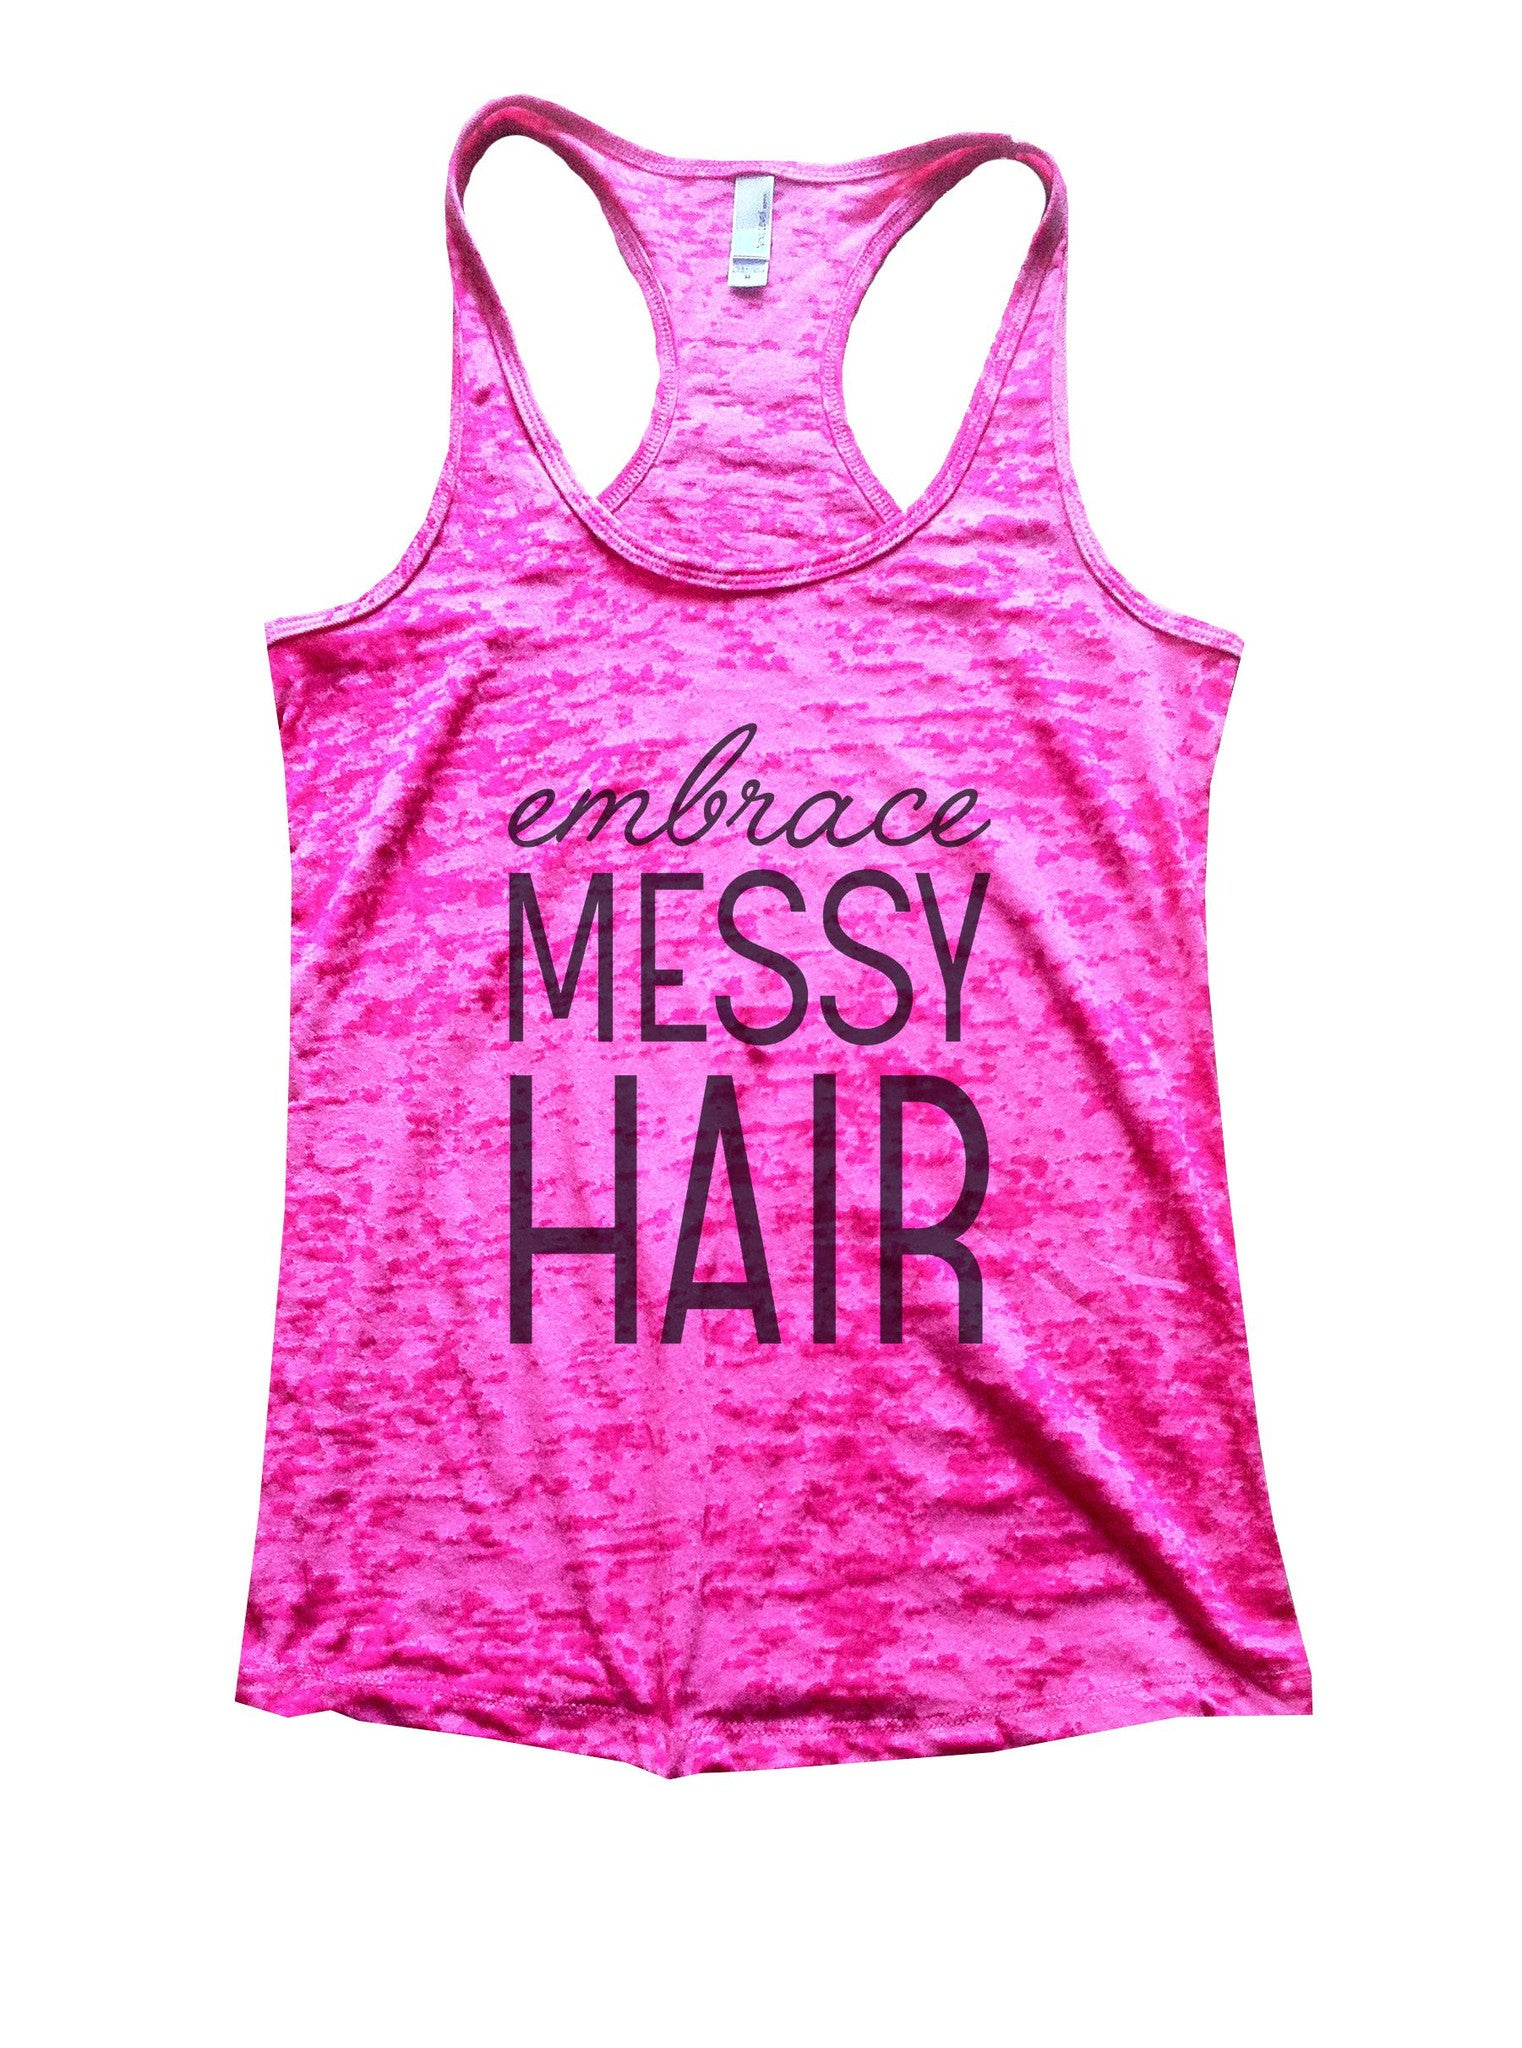 Embrace Messy Hair Burnout Tank Top By BurnoutTankTops.com - 940 - Funny Shirts Tank Tops Burnouts and Triblends  - 5